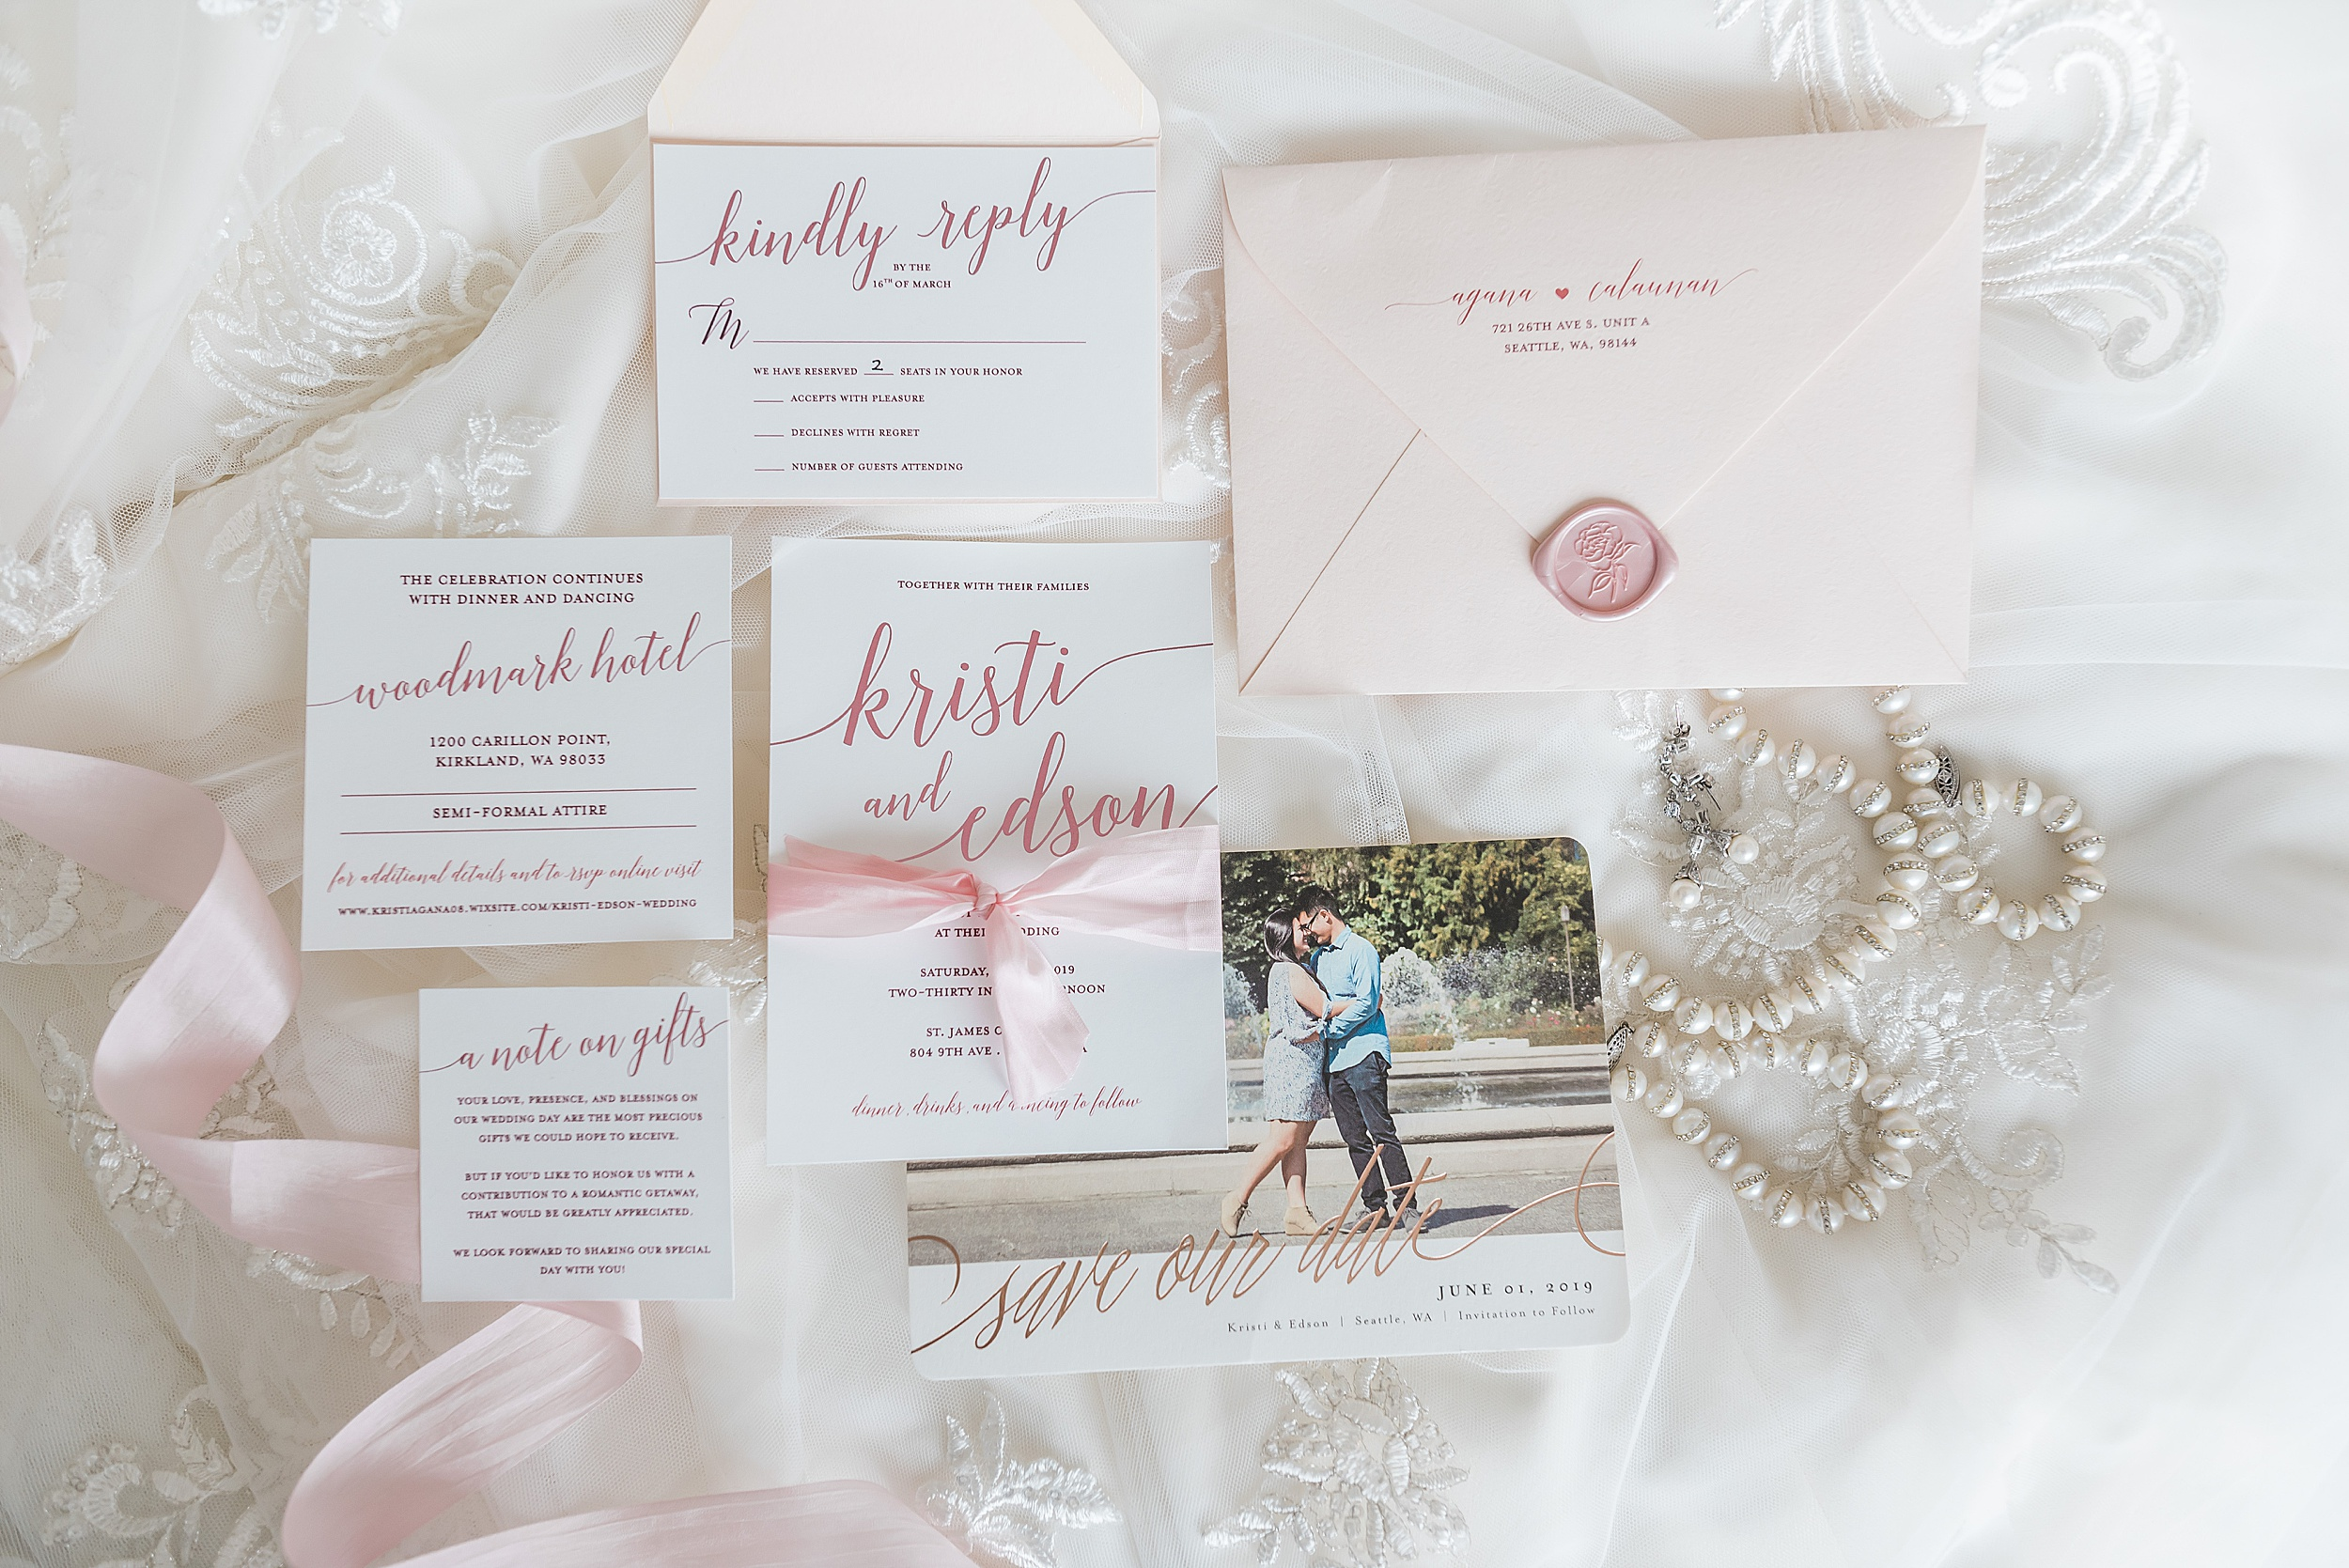 Blush wedding invitation| Woodmark Hotel Waterfront Wedding. Sea